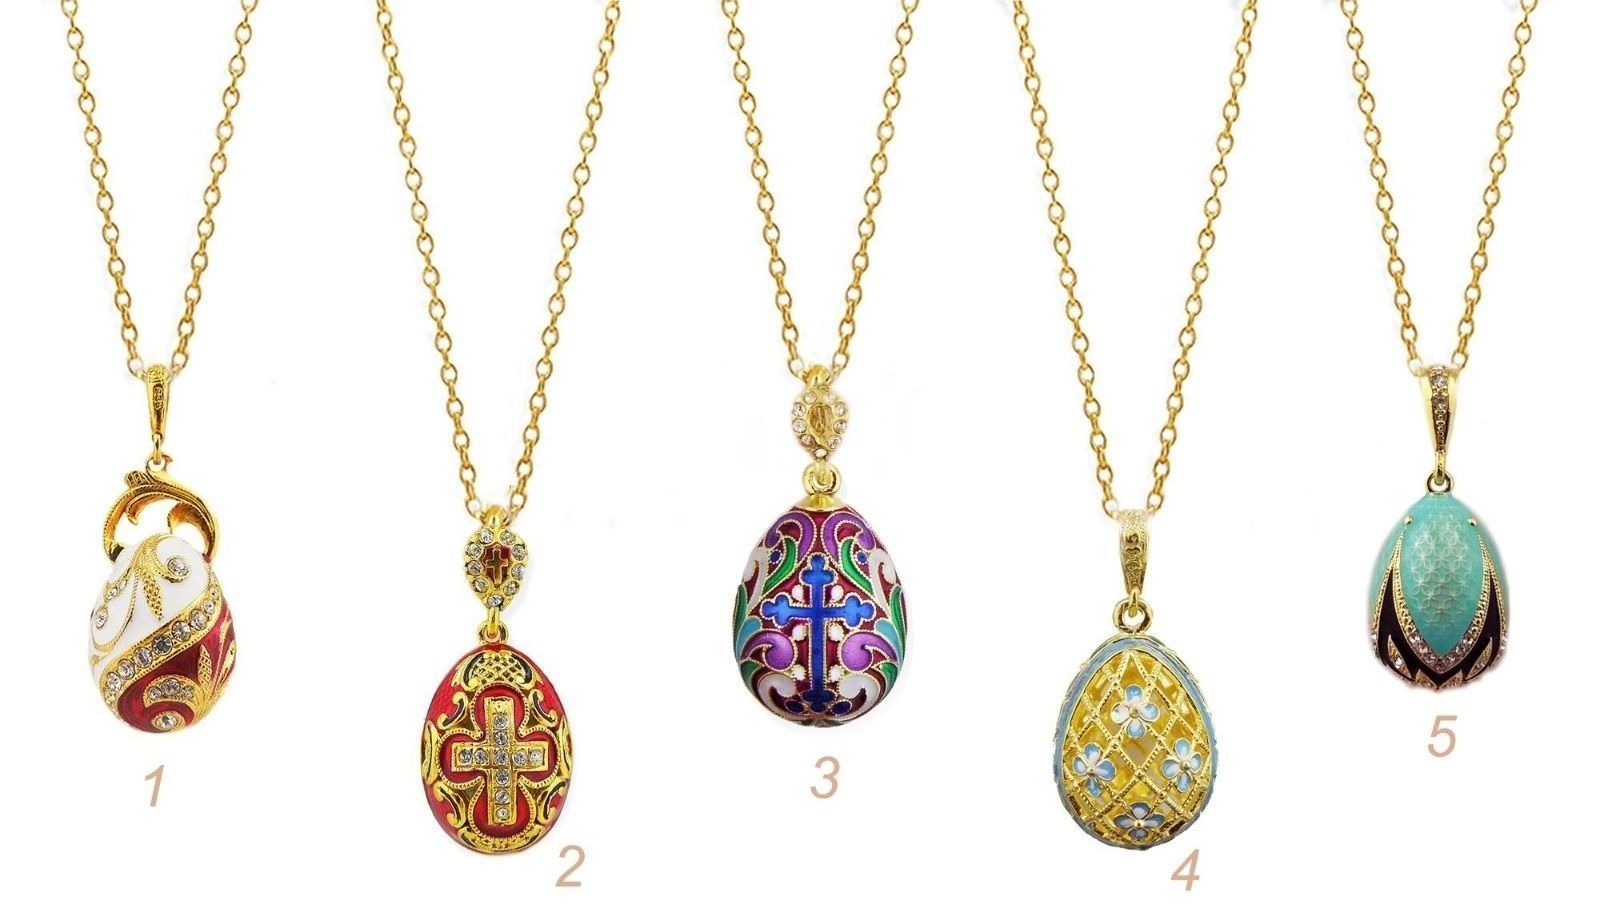 SET OF 5 Sterling Silver Gold Plated Egg Pendants Cross Enameled Chains Gift WOW AU $847.96